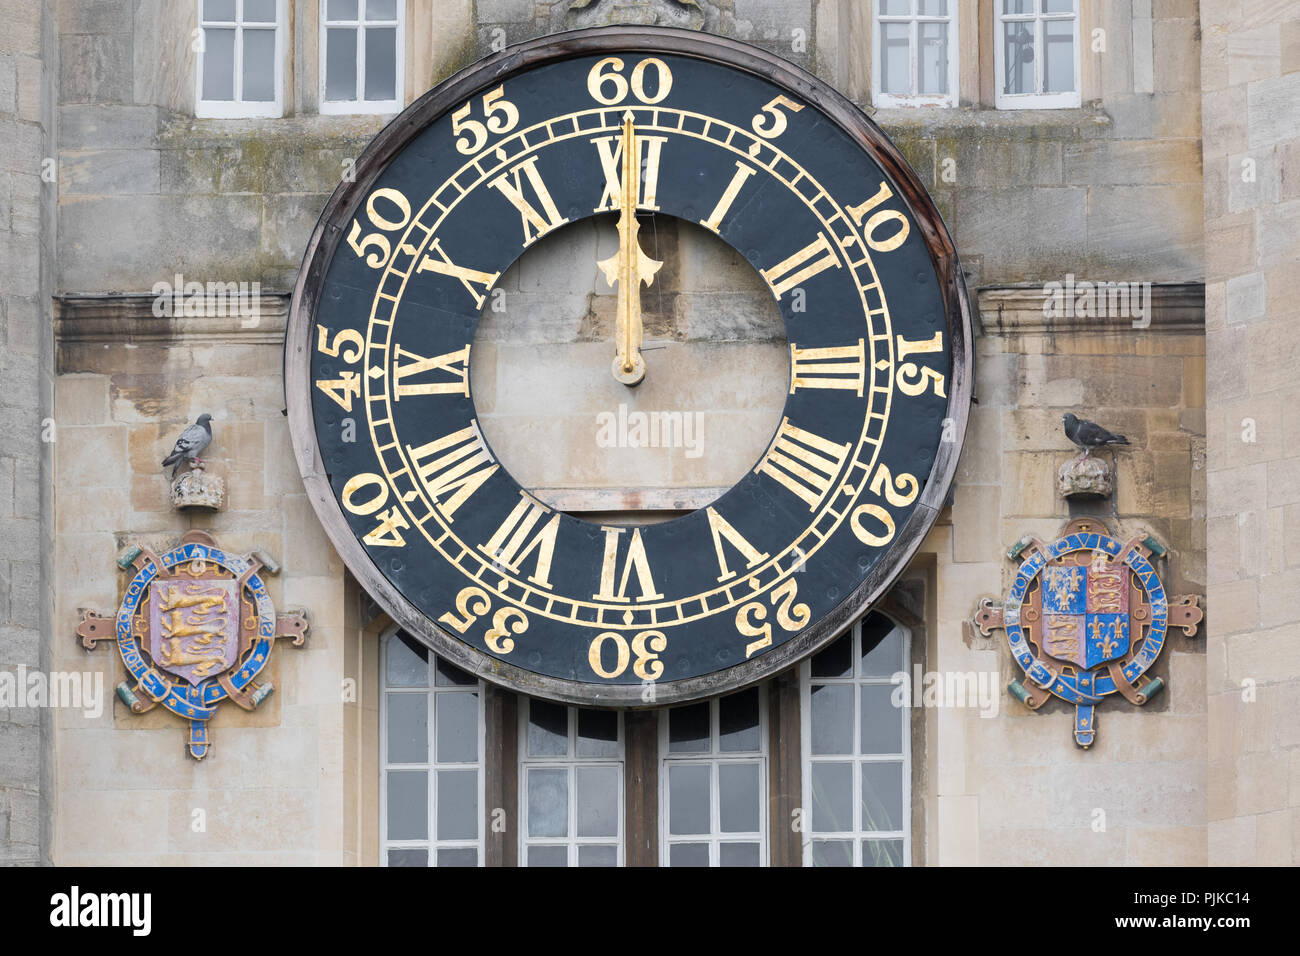 Midday (12 o'clock) at the clock on the wall of King Edward tower, which overlooks Great Court , Trinity college, university of Cambridge, England. - Stock Image